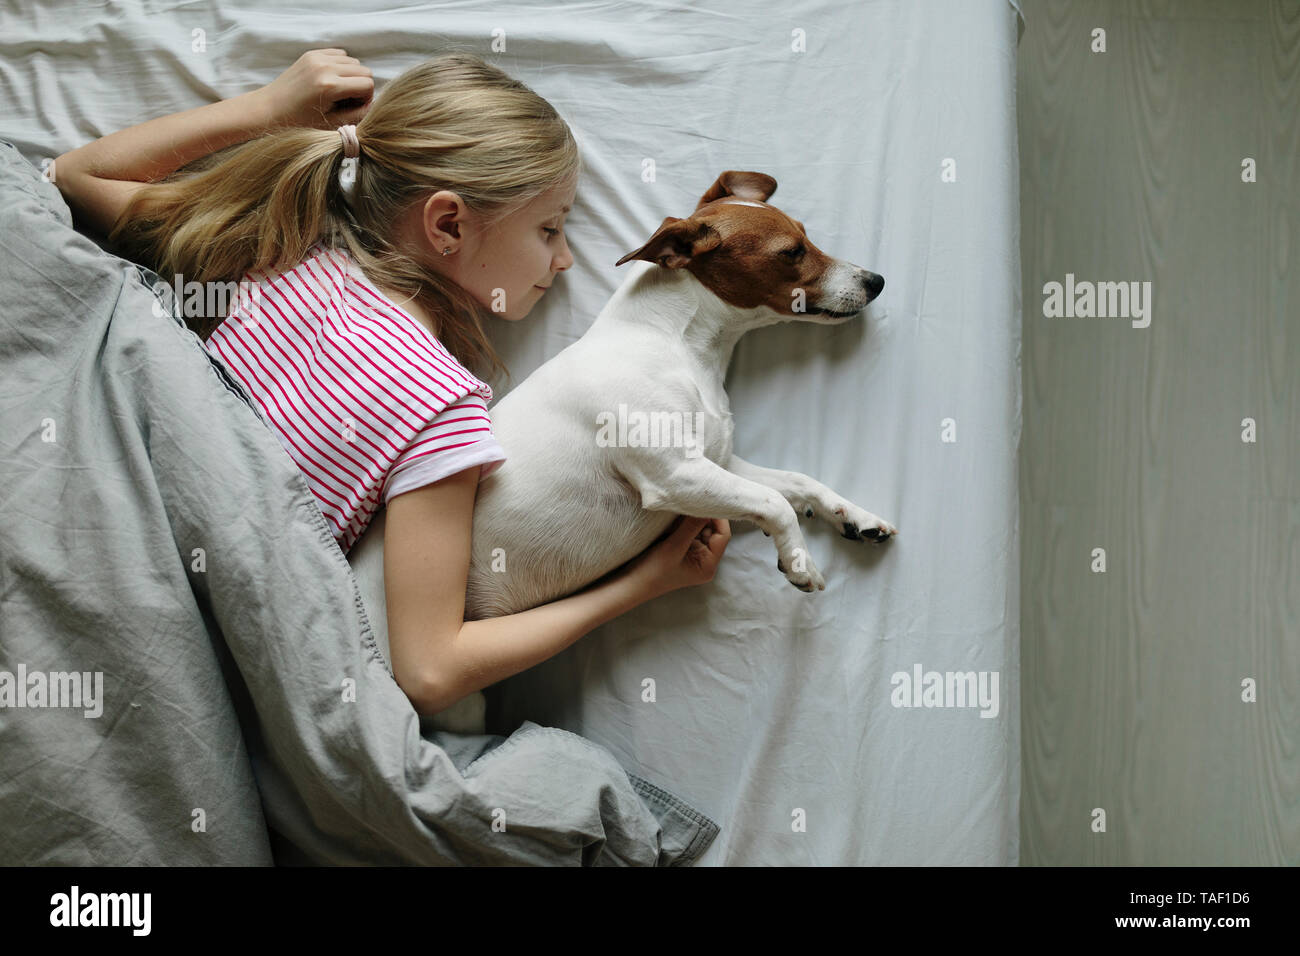 Blond girl lying on bed with her dog sleeping, top view - Stock Image